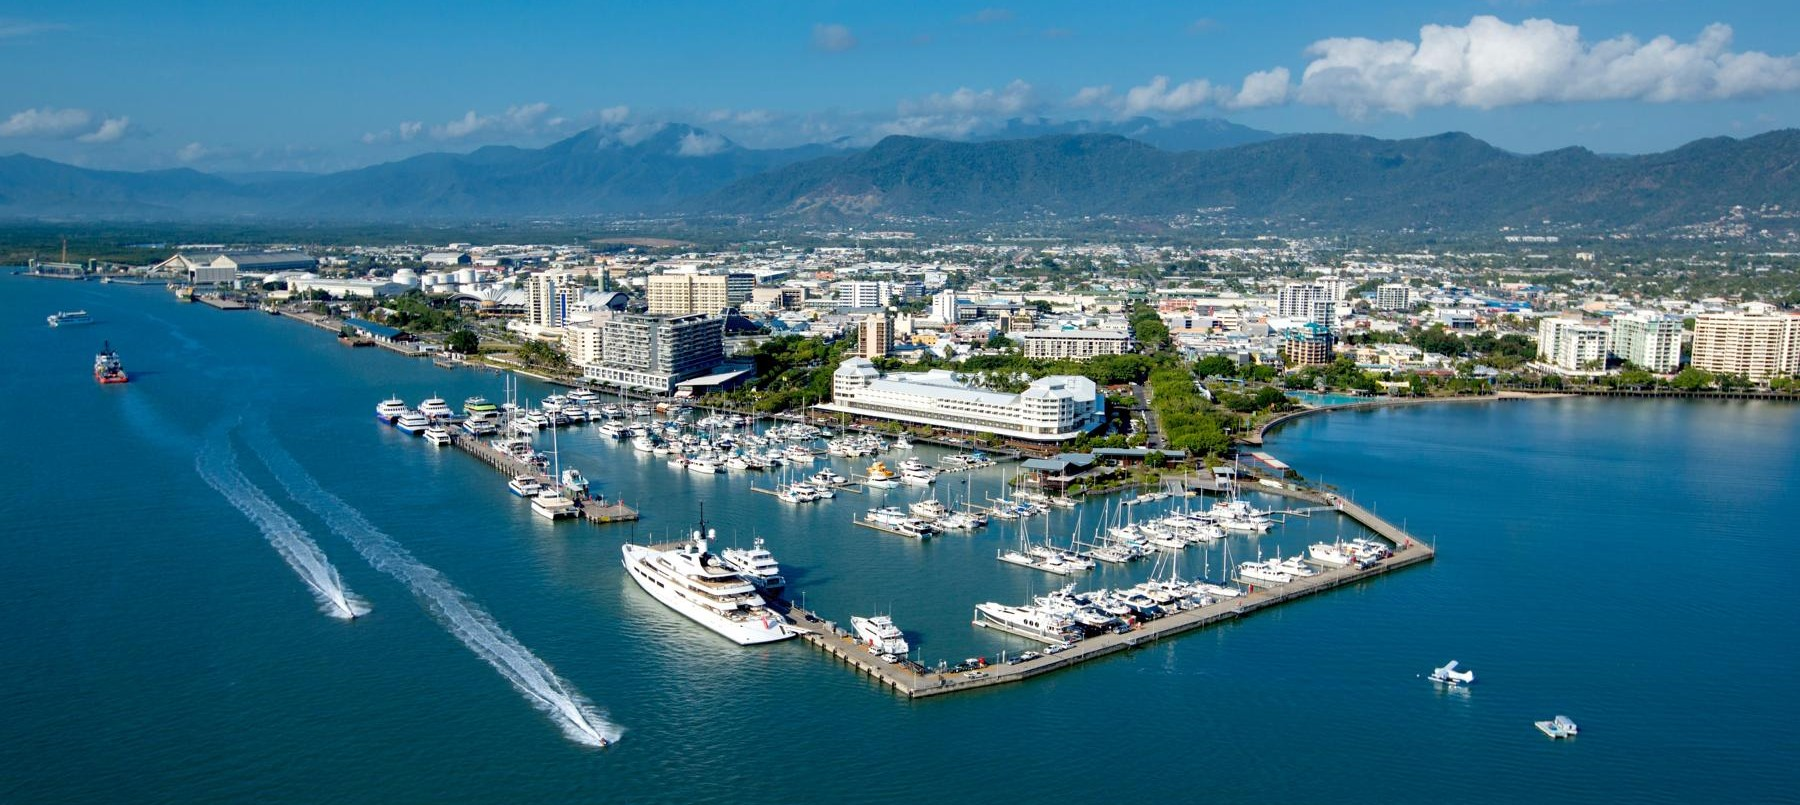 How to spend a weekend in Cairns